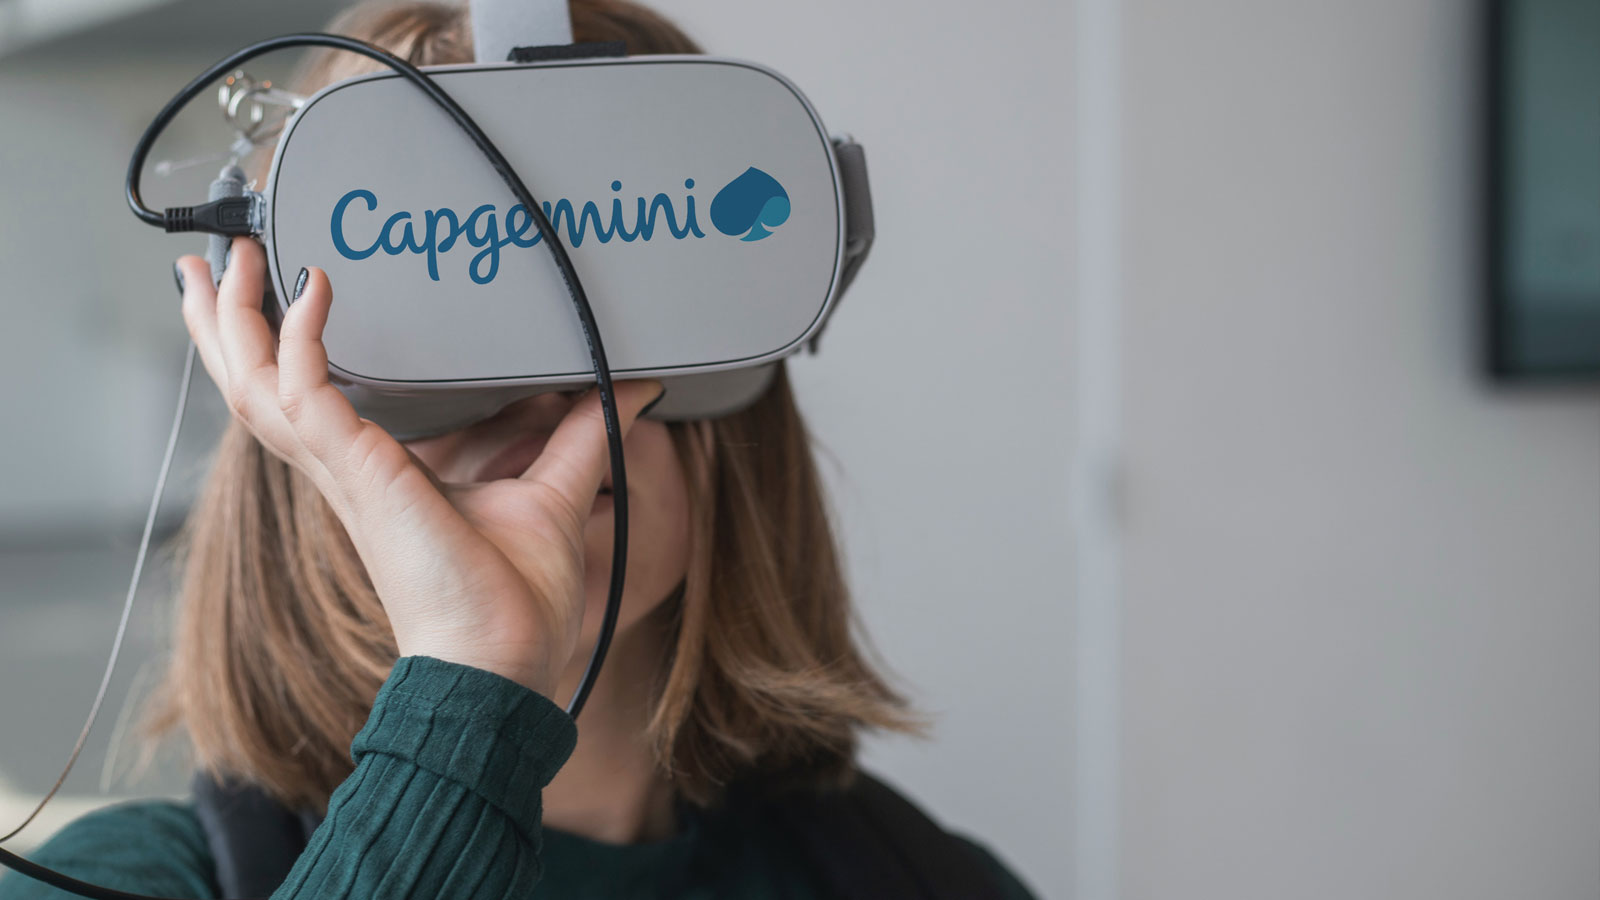 Lady using a VR headset with a Capgemini logo on it